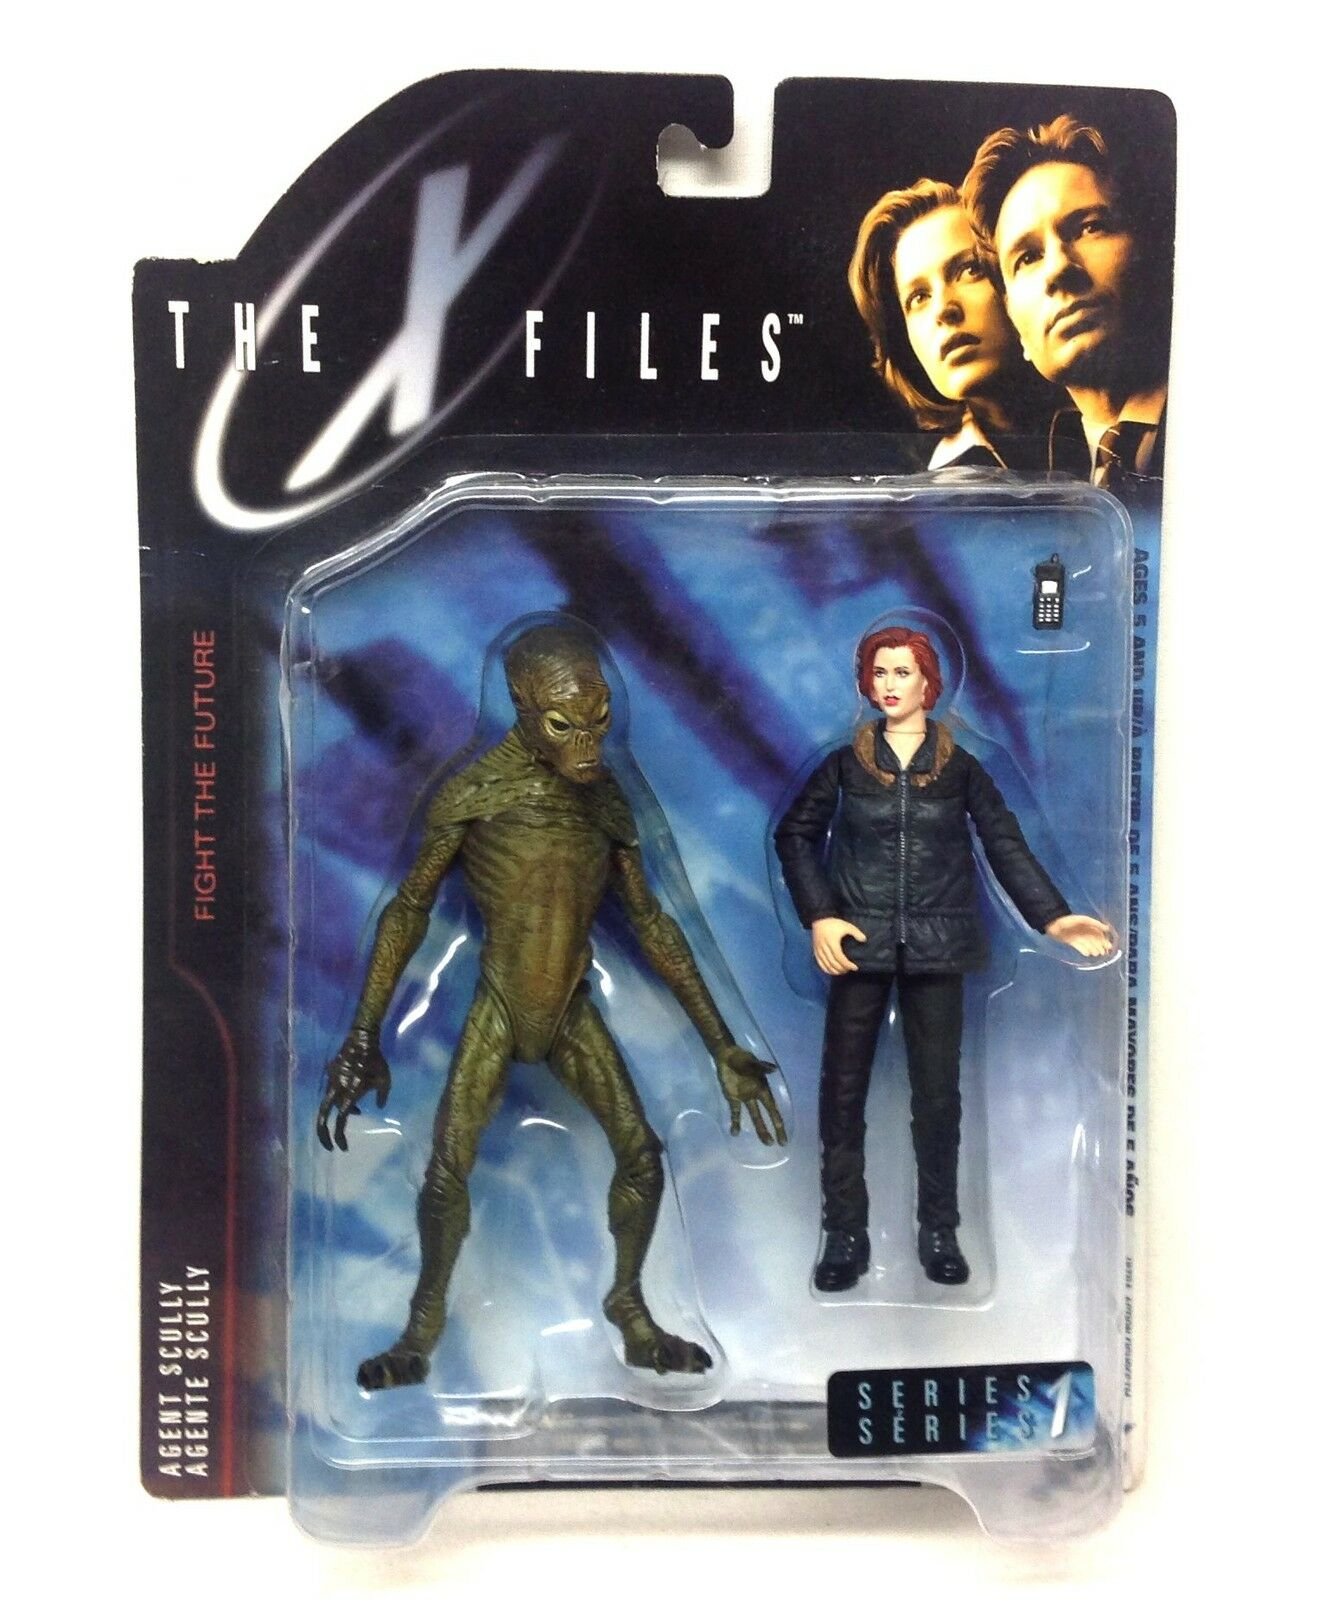 McFarlane giocattoli x  file Alieno & Dana Scully TV MOVIE cifra SET grei cifra   prezzo all'ingrosso